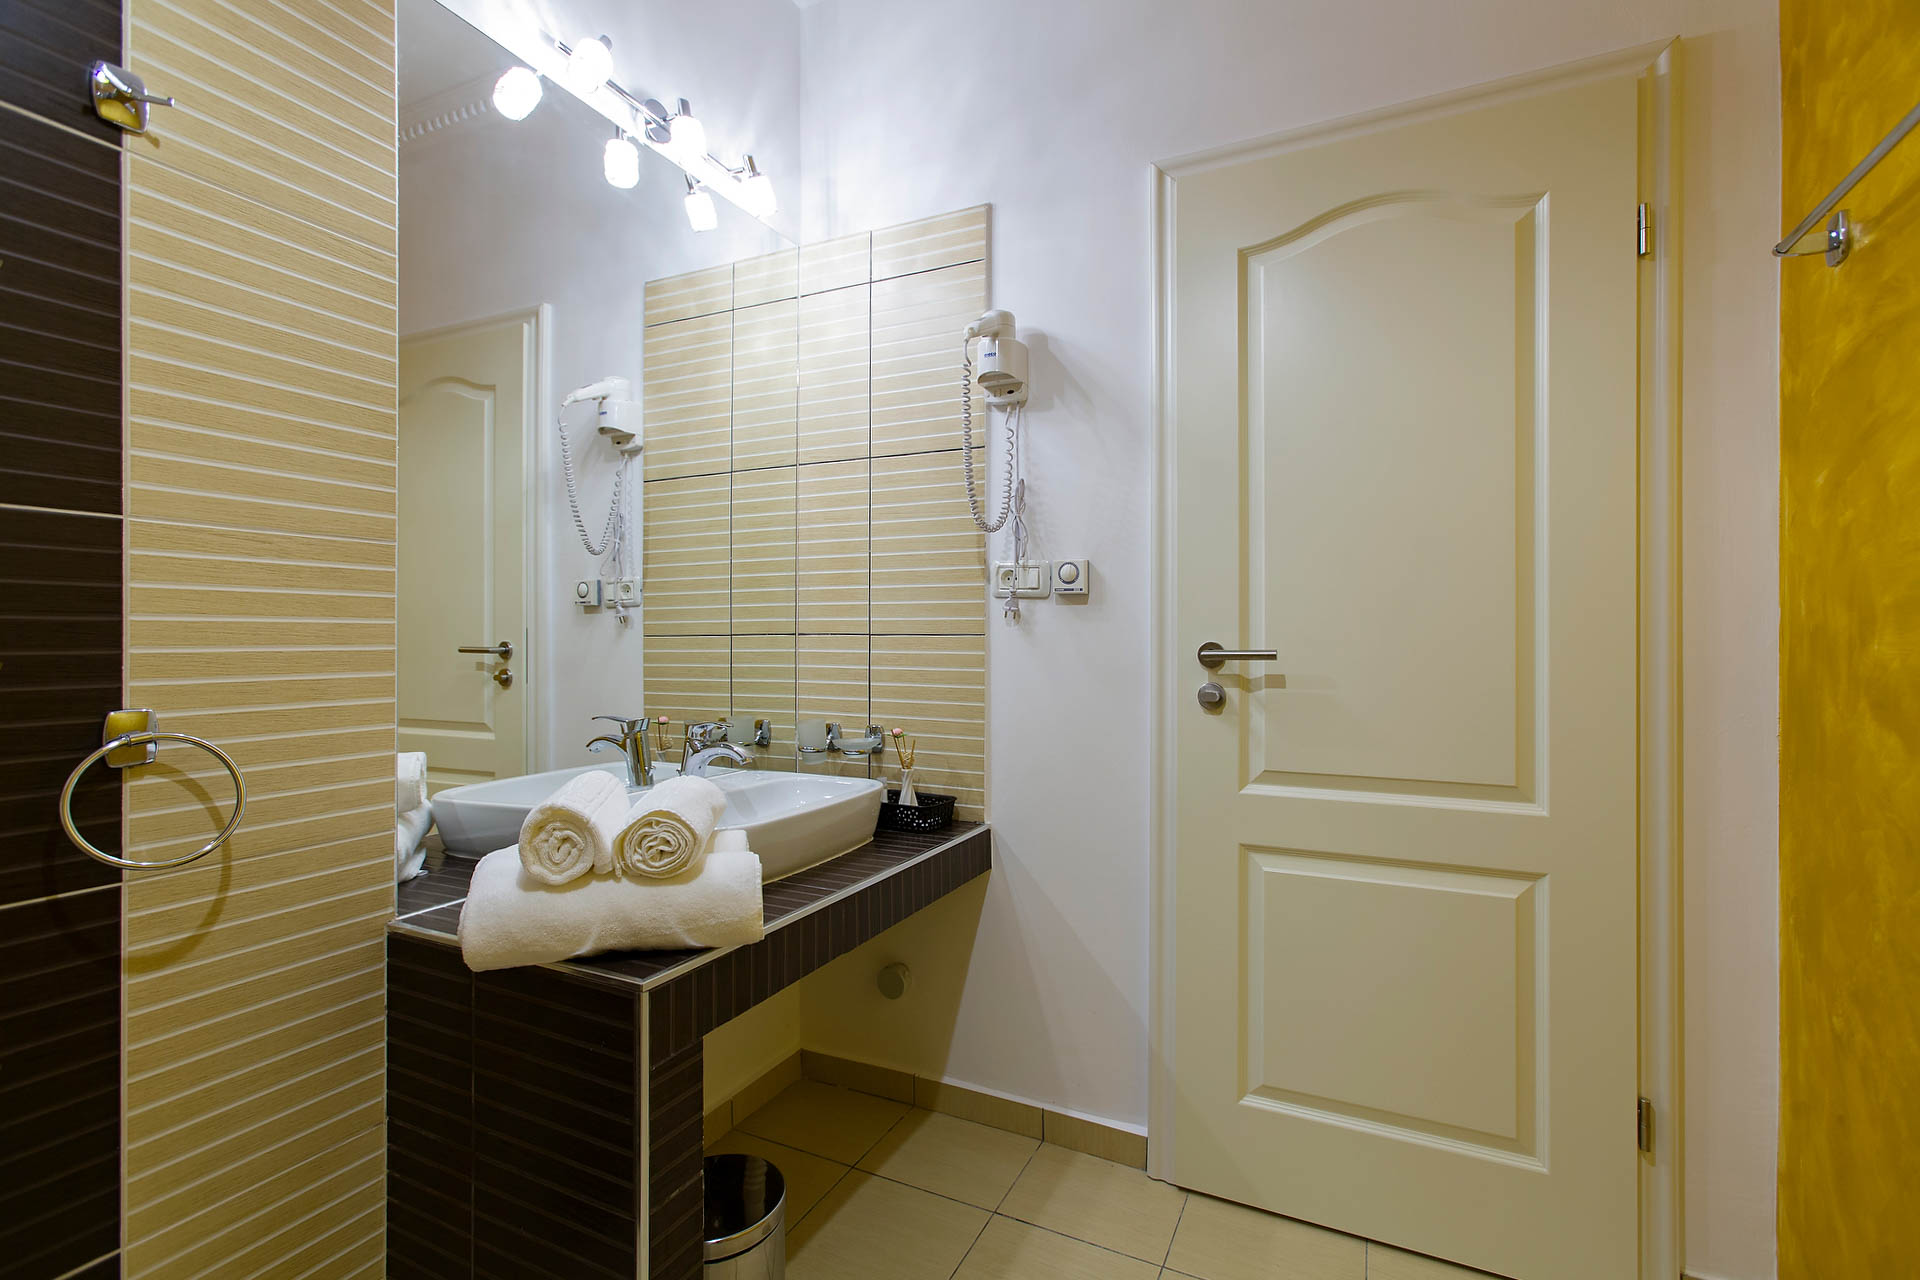 Accommodation Brasov - The Harghita Room - Bathroom